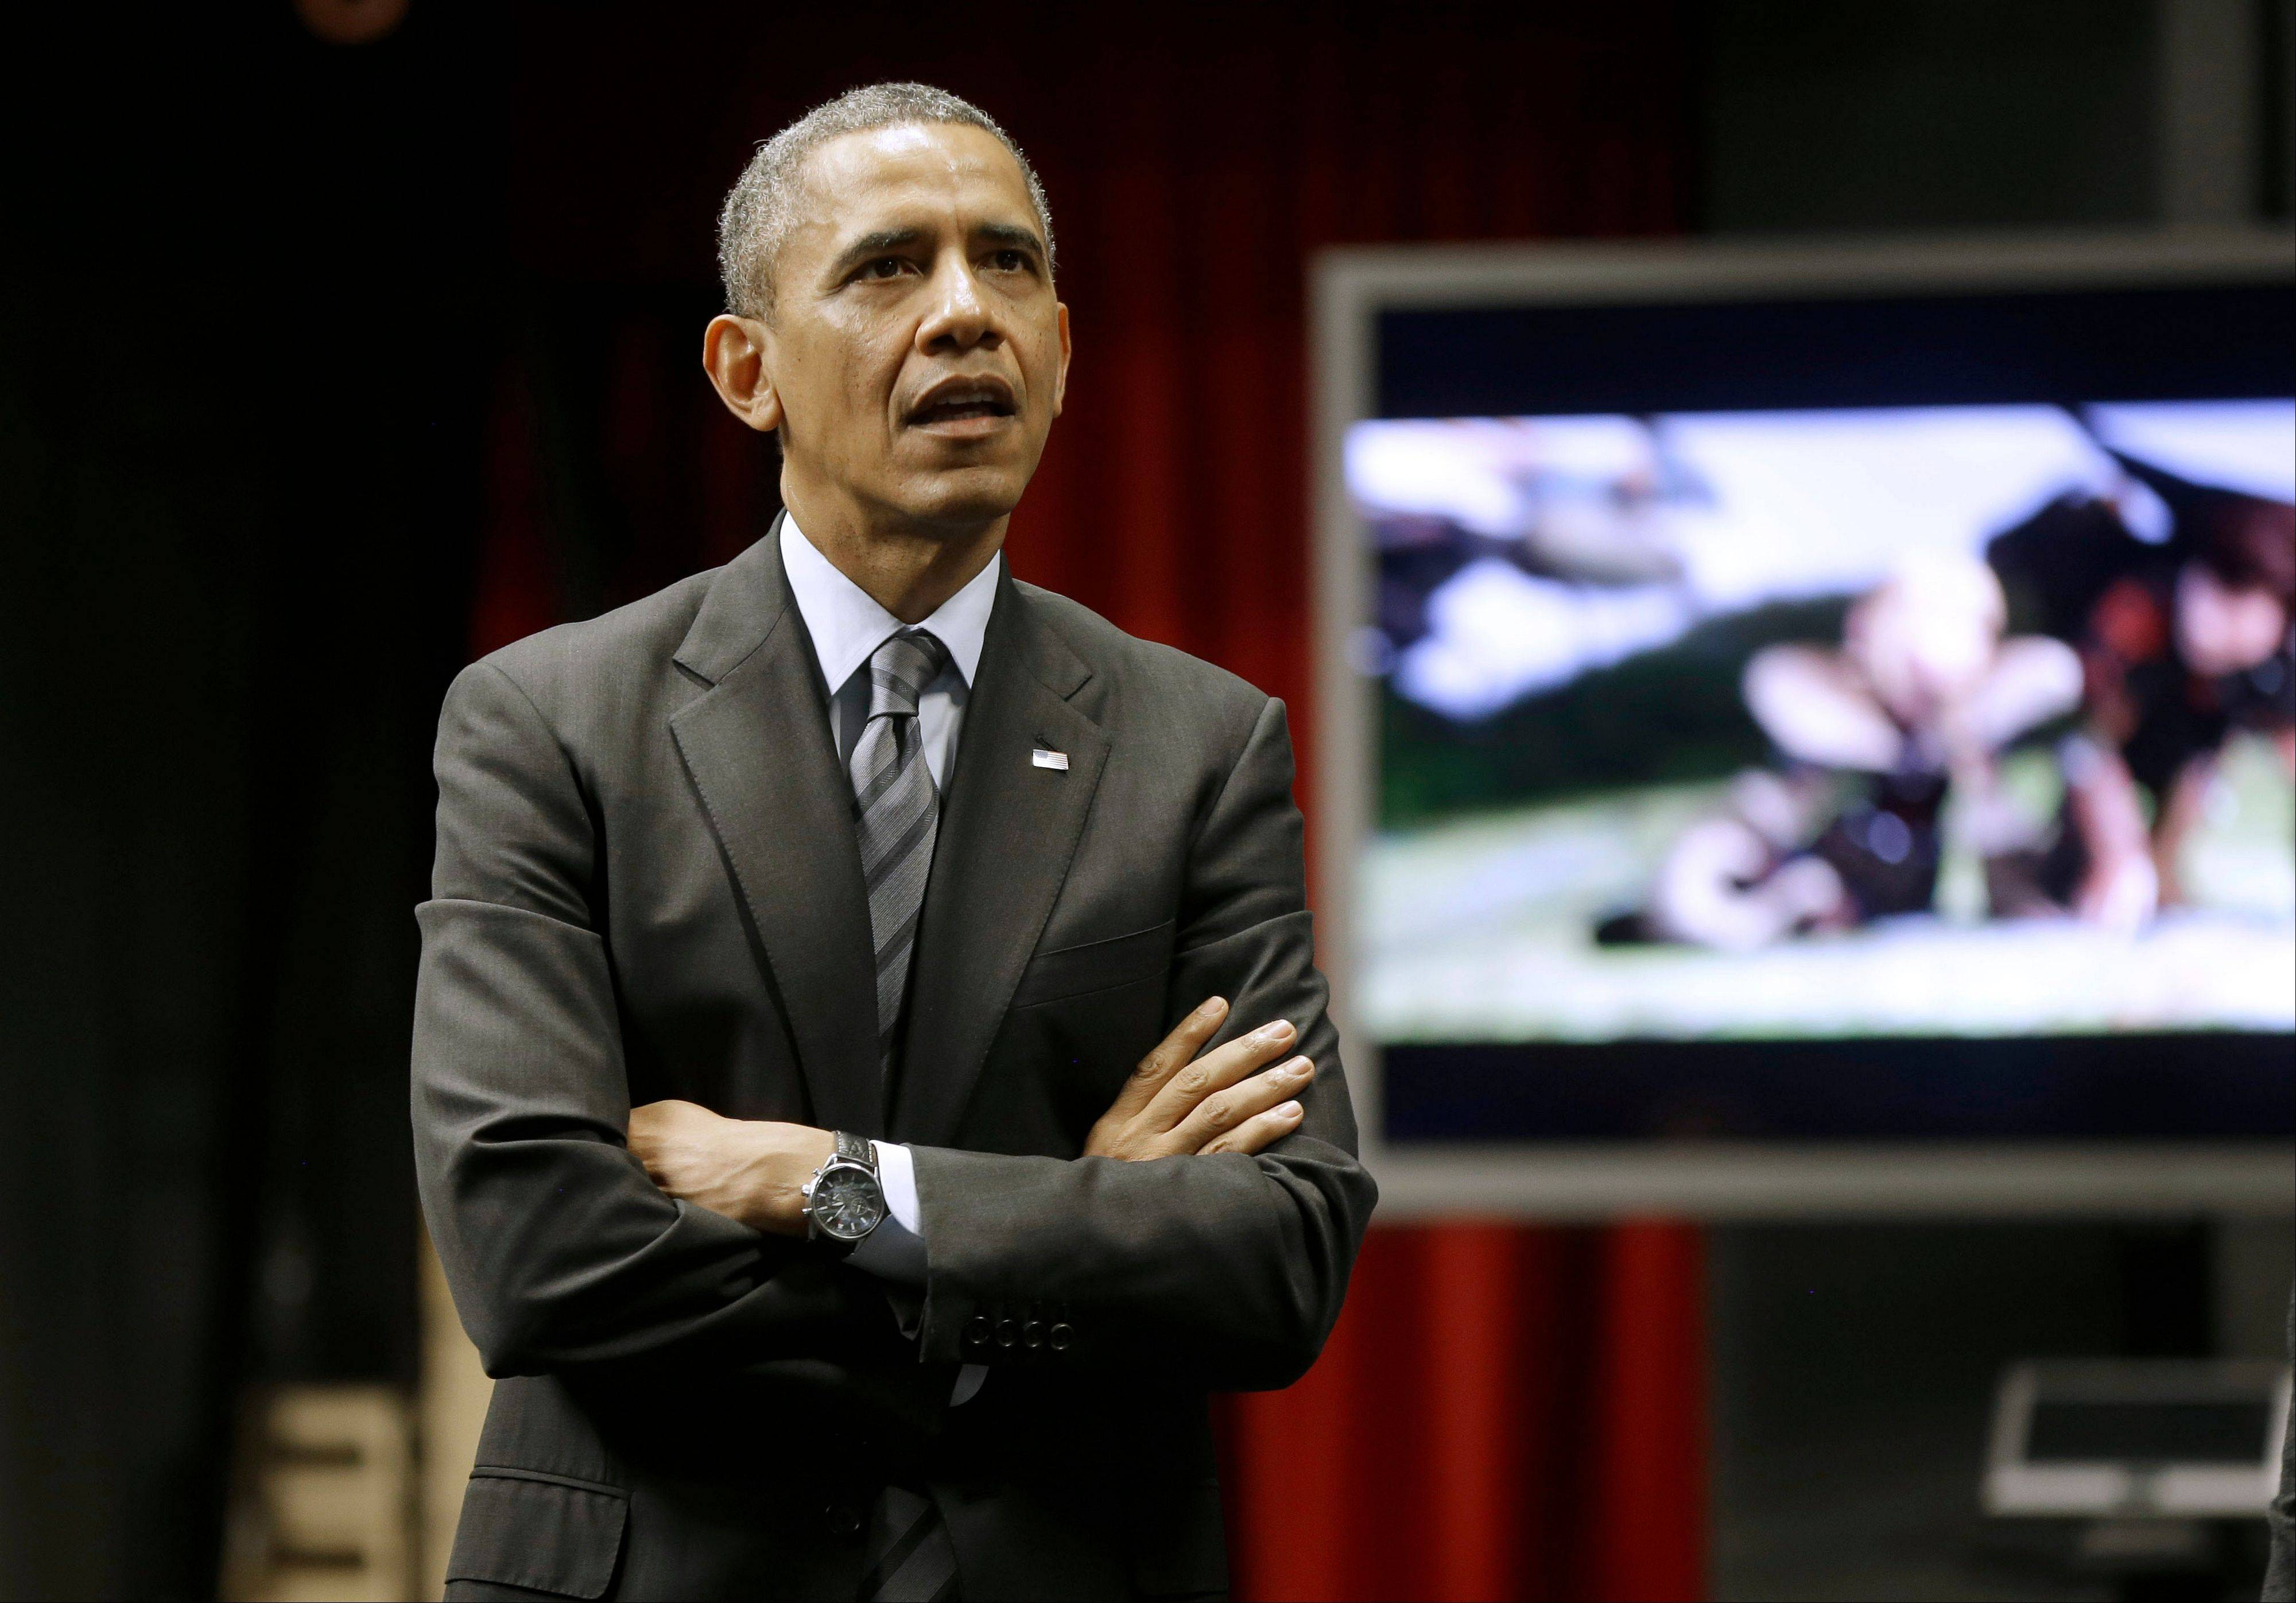 The first year of President Barack Obama's second term has been mostly marked by setbacks and little achieved.